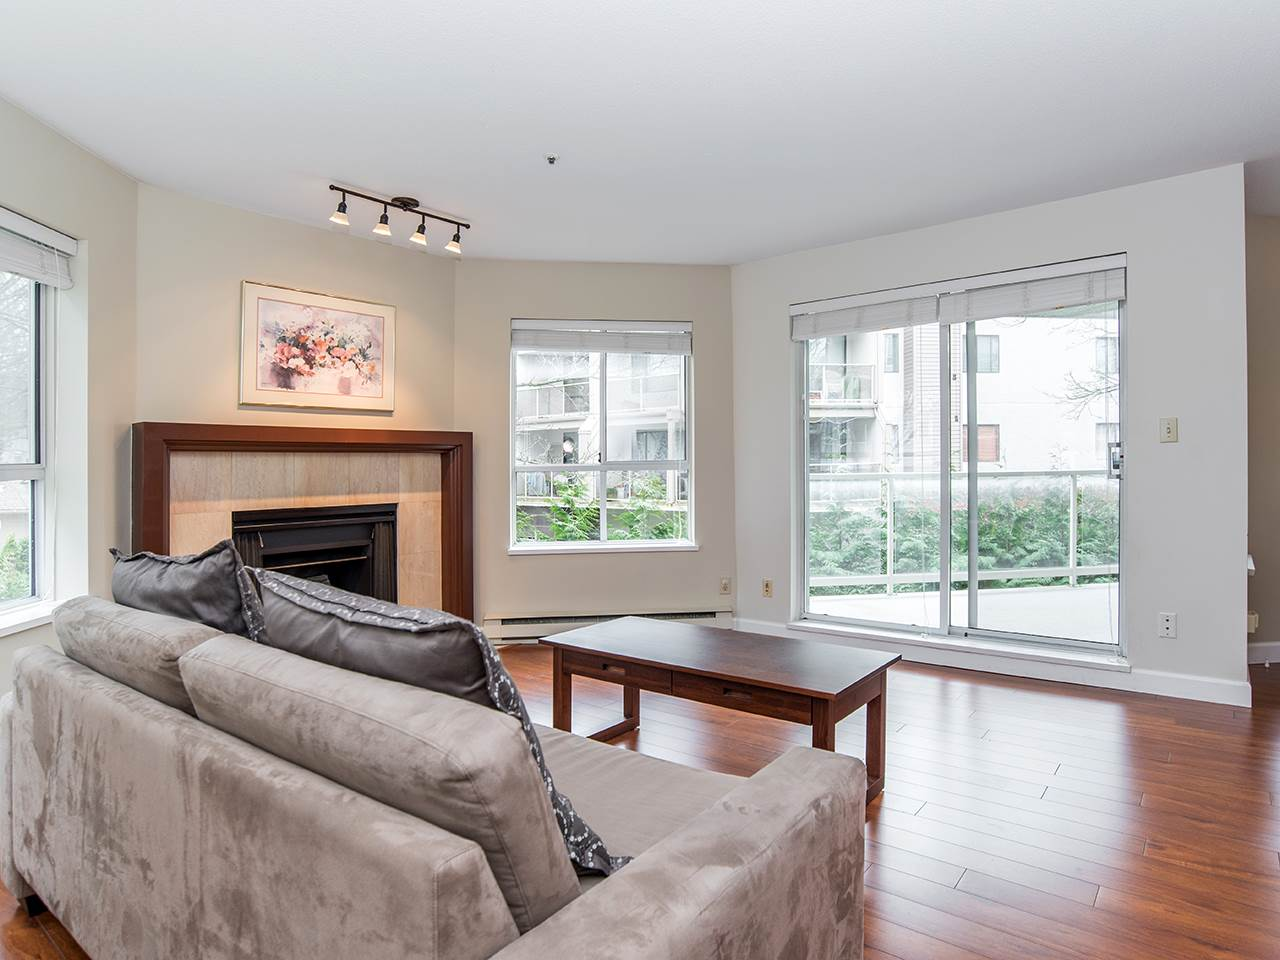 "Photo 6: 110 8651 ACKROYD Road in Richmond: Brighouse Condo for sale in ""The Cartier"" : MLS® # R2152253"